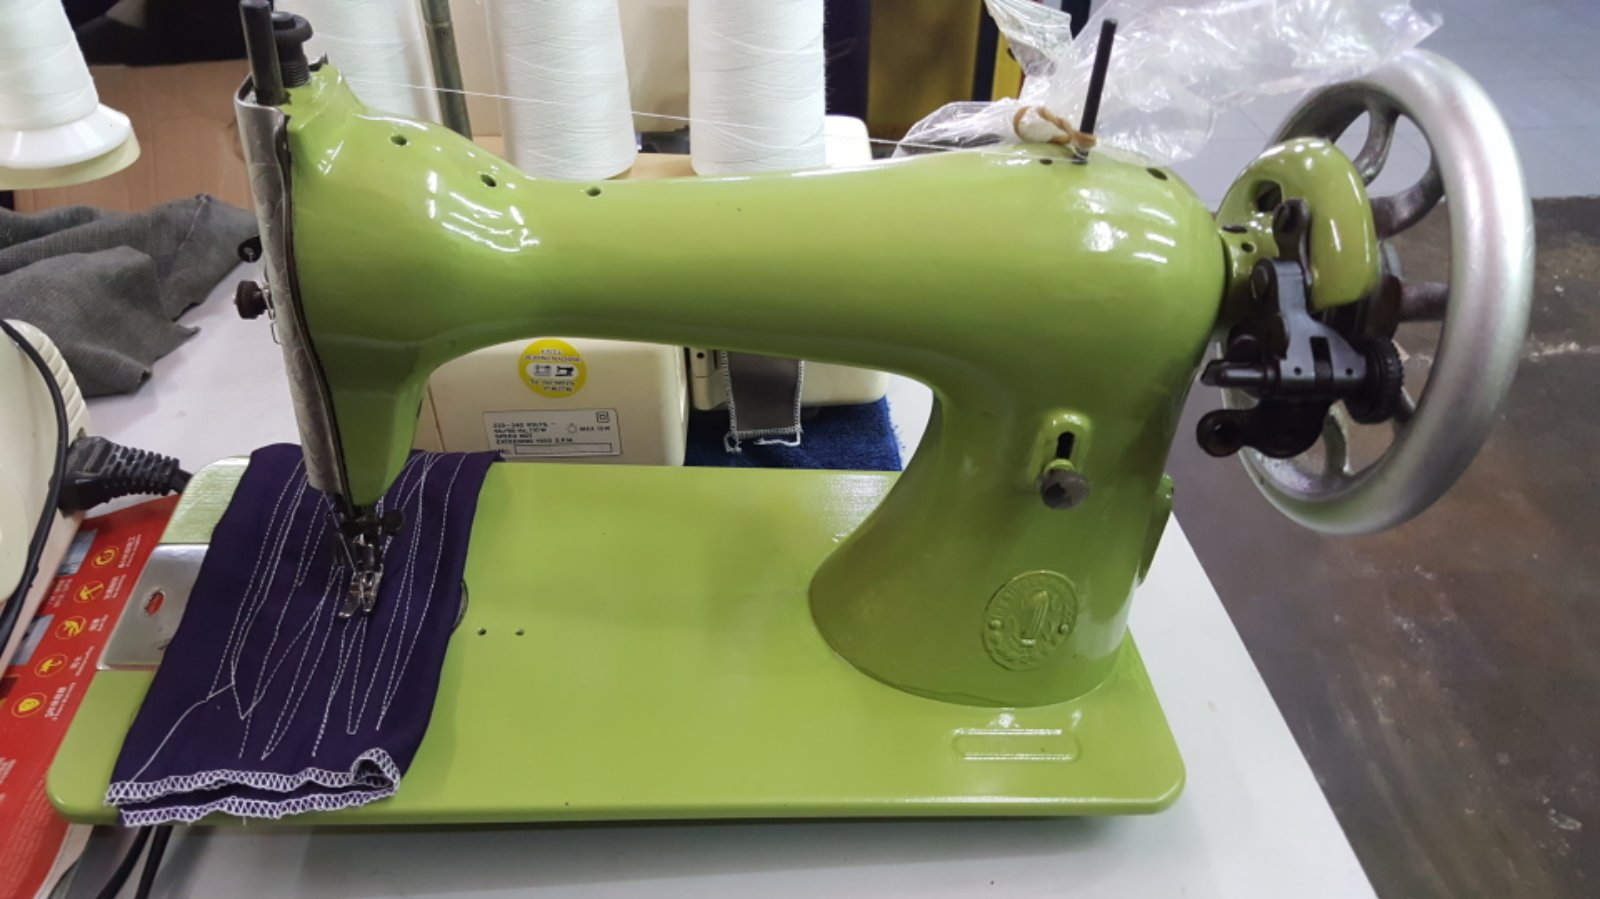 Spray and Repair Sewing Machine